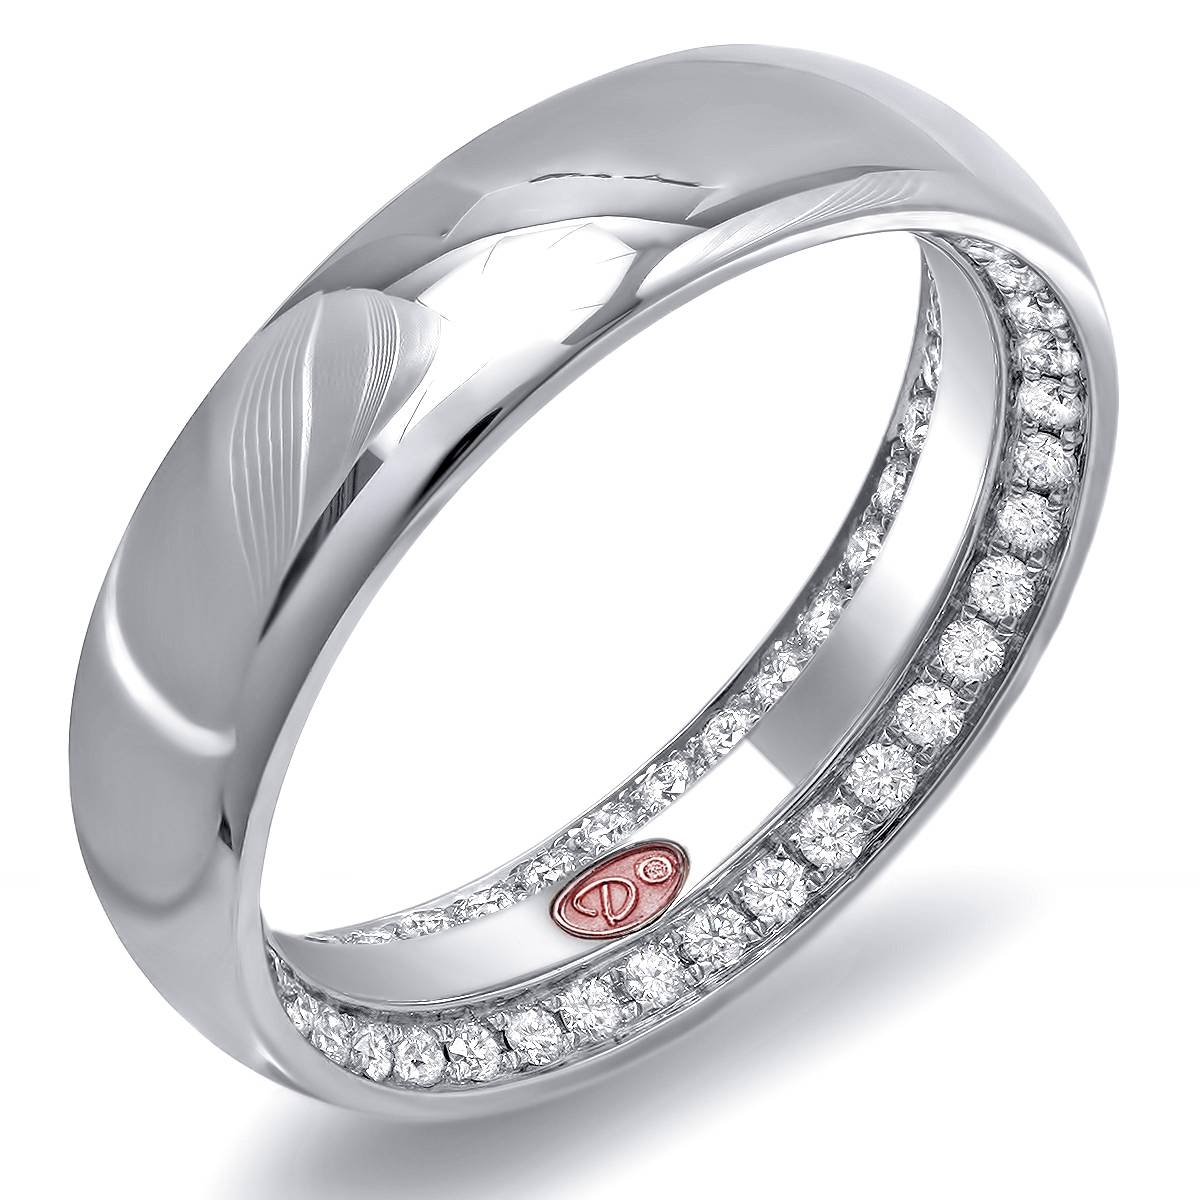 hers band all mm images breathtaking and for platin sale price wedding hammered cost bands his platinum curved mens